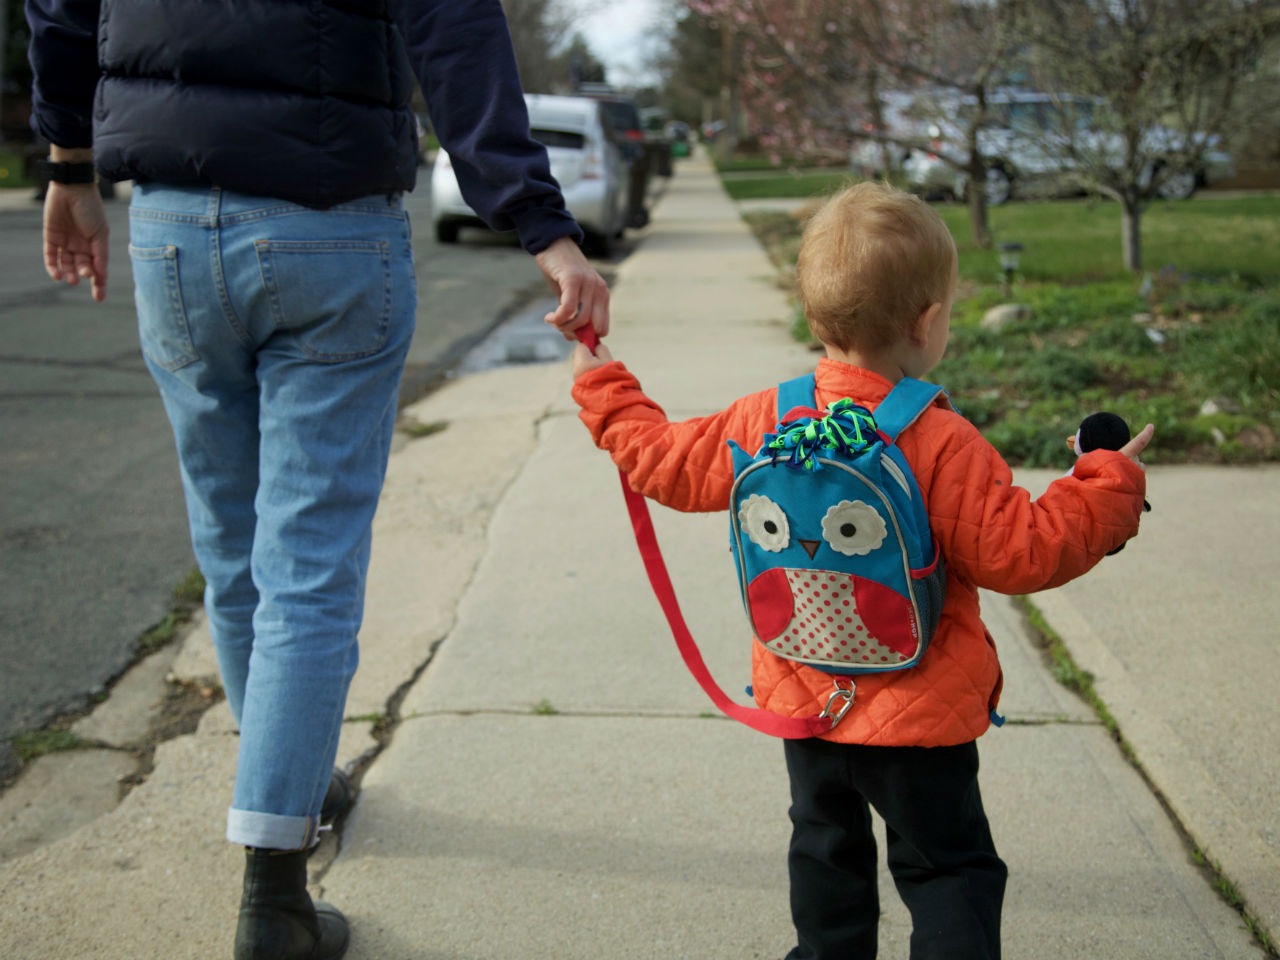 Yes, my kid is on a leash  Don't judge me